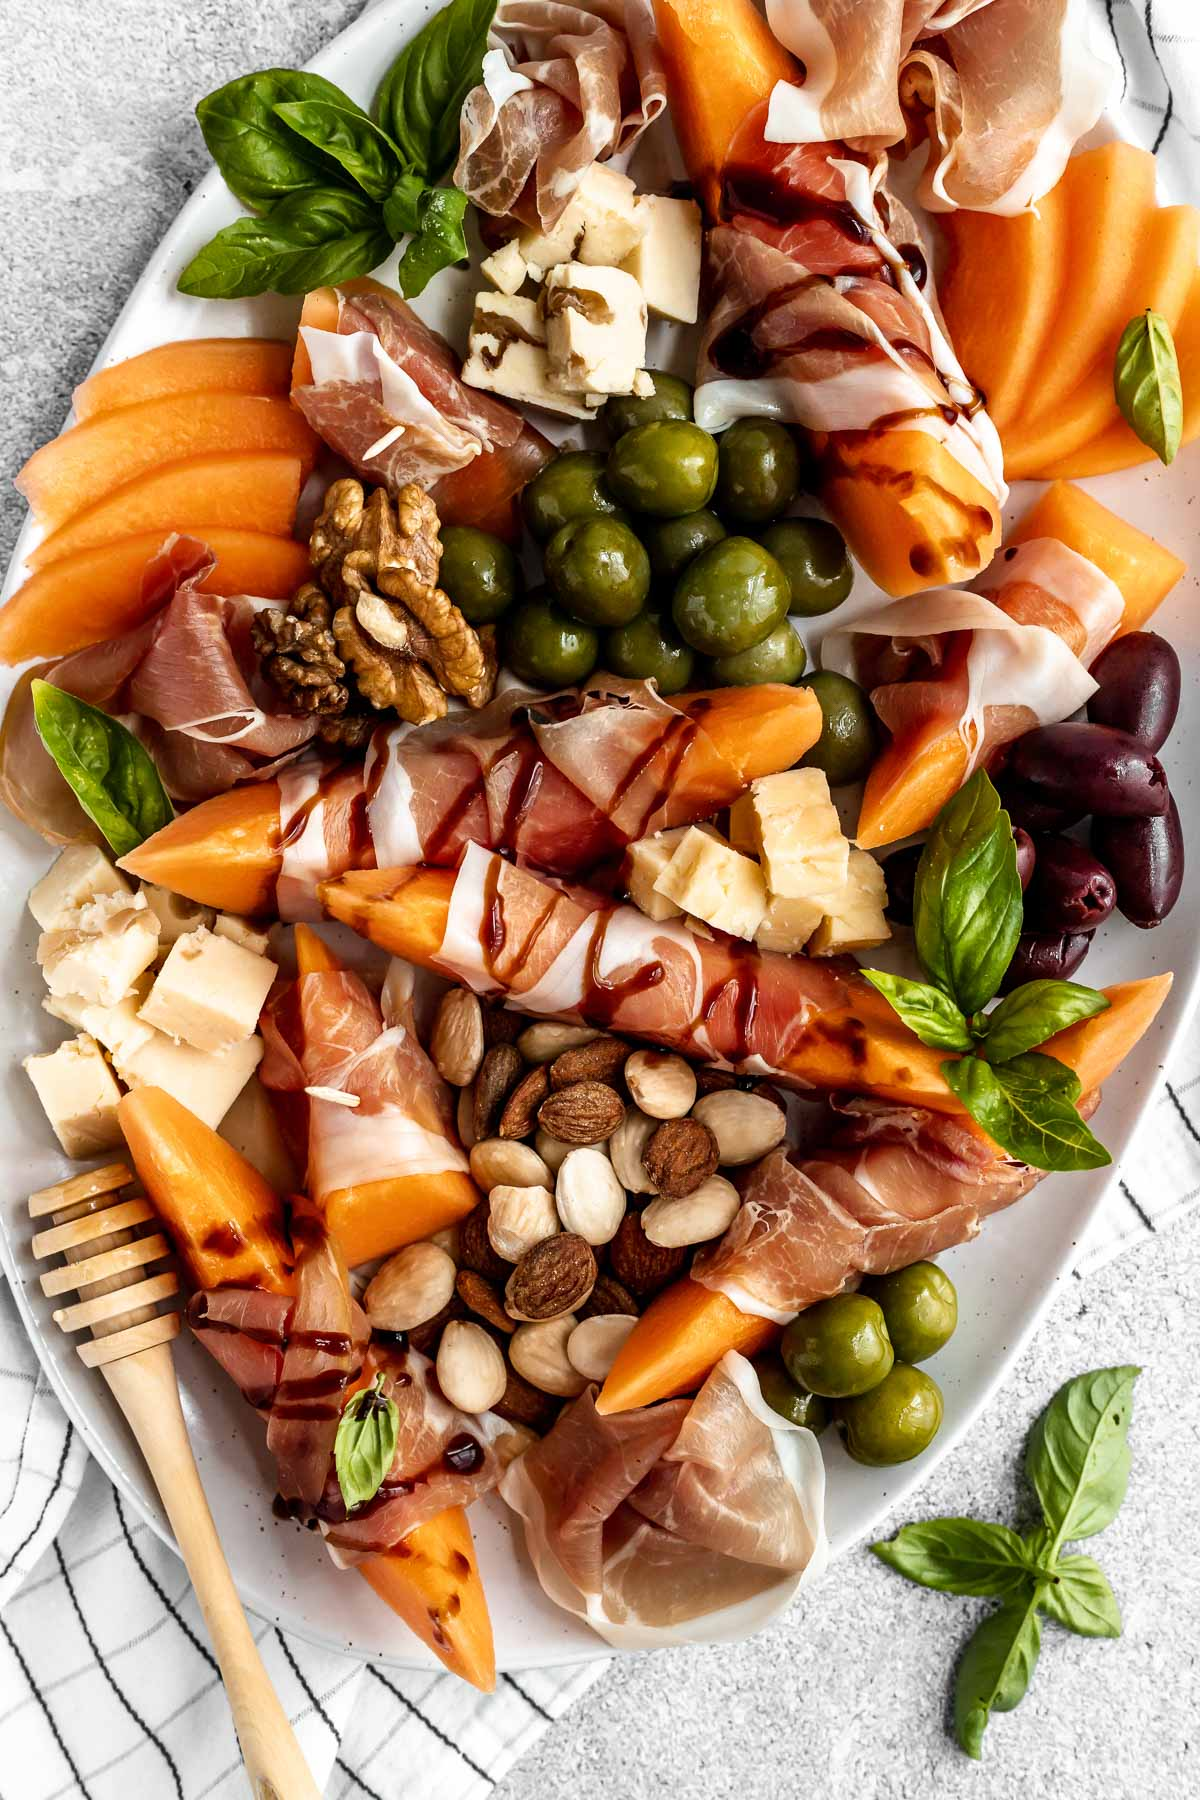 Close up of prosciutto and melon cheese board! Prosciutto-Wrapped Cantaloupe on a large serving platter with olives, nuts, cheese, & fresh basil leaves. Some pieces of prosciutto-wrapped melon are drizzled with balsamic syrup.